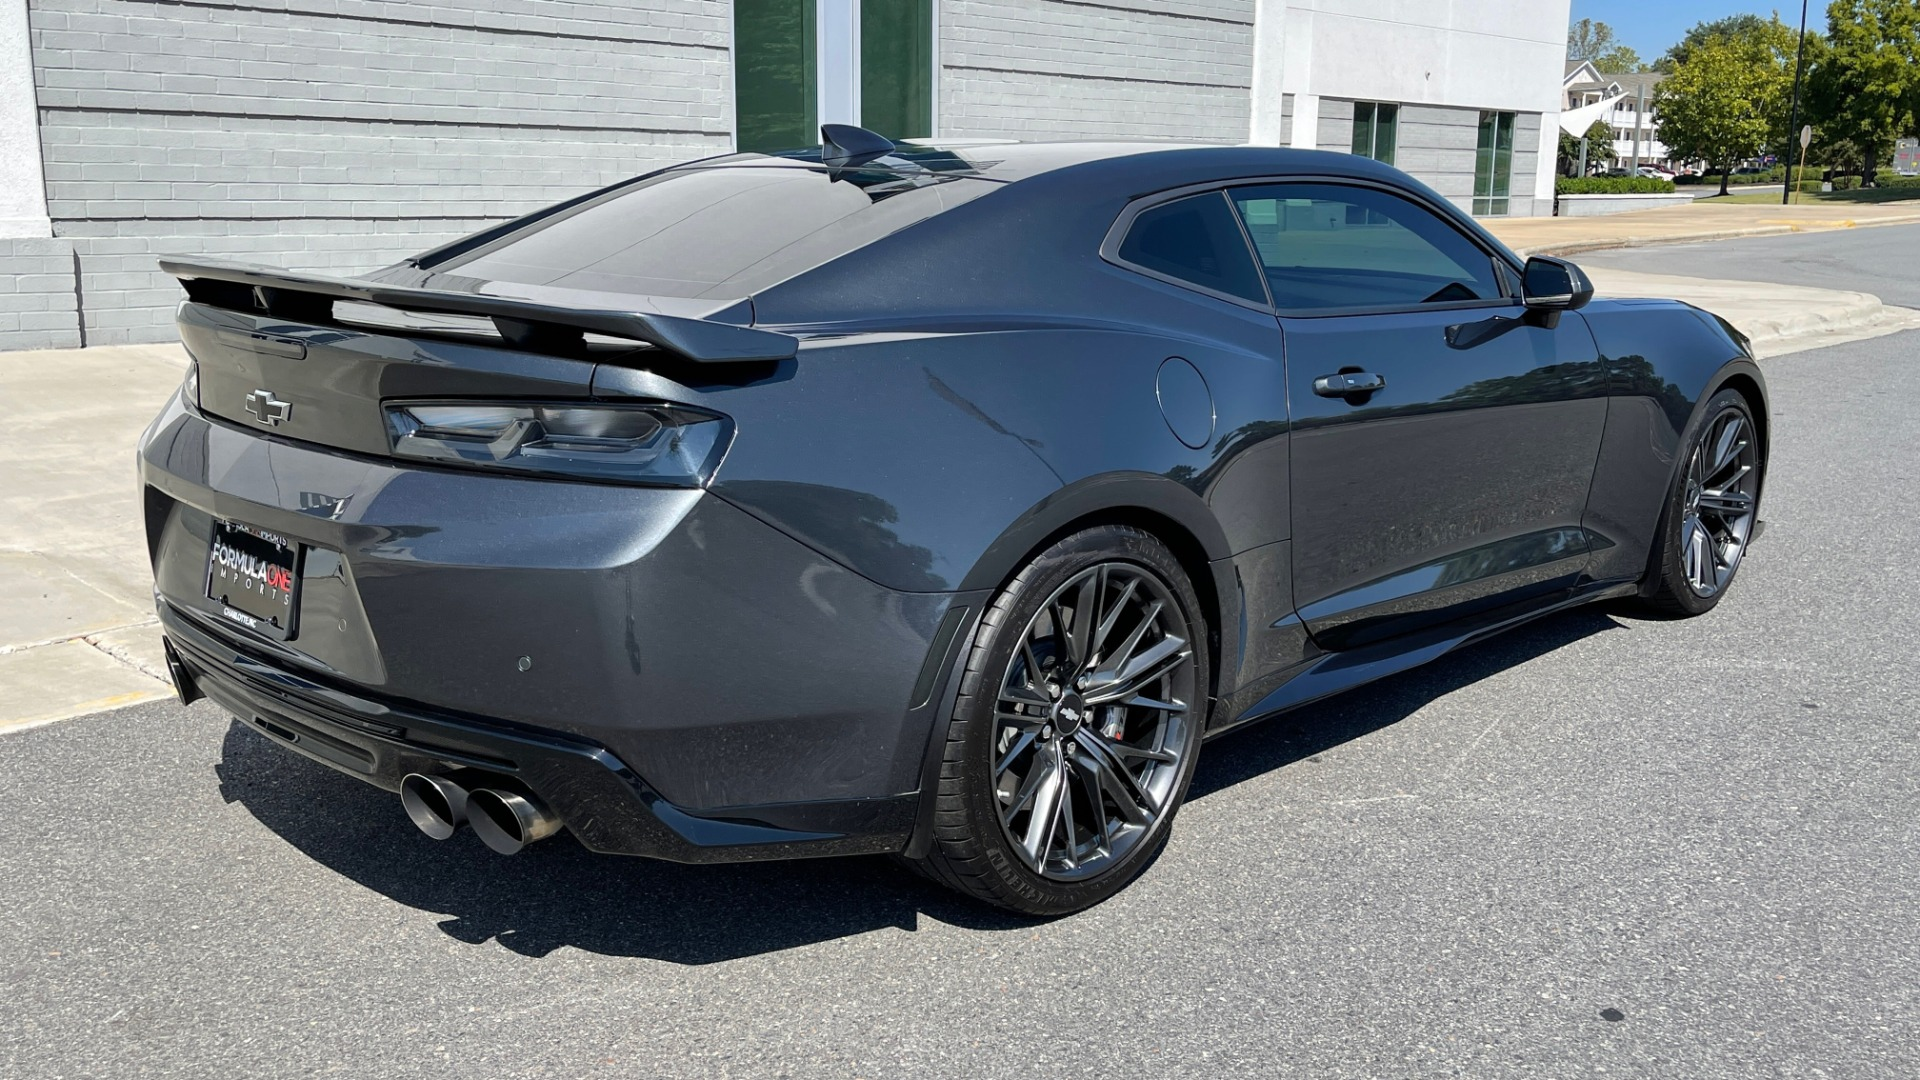 Used 2018 Chevrolet CAMARO ZL1 SUPERCHARGED COUPE 850HP / 10-SPD AUTO / NAV / BOSE / REARVIEW for sale $59,995 at Formula Imports in Charlotte NC 28227 4